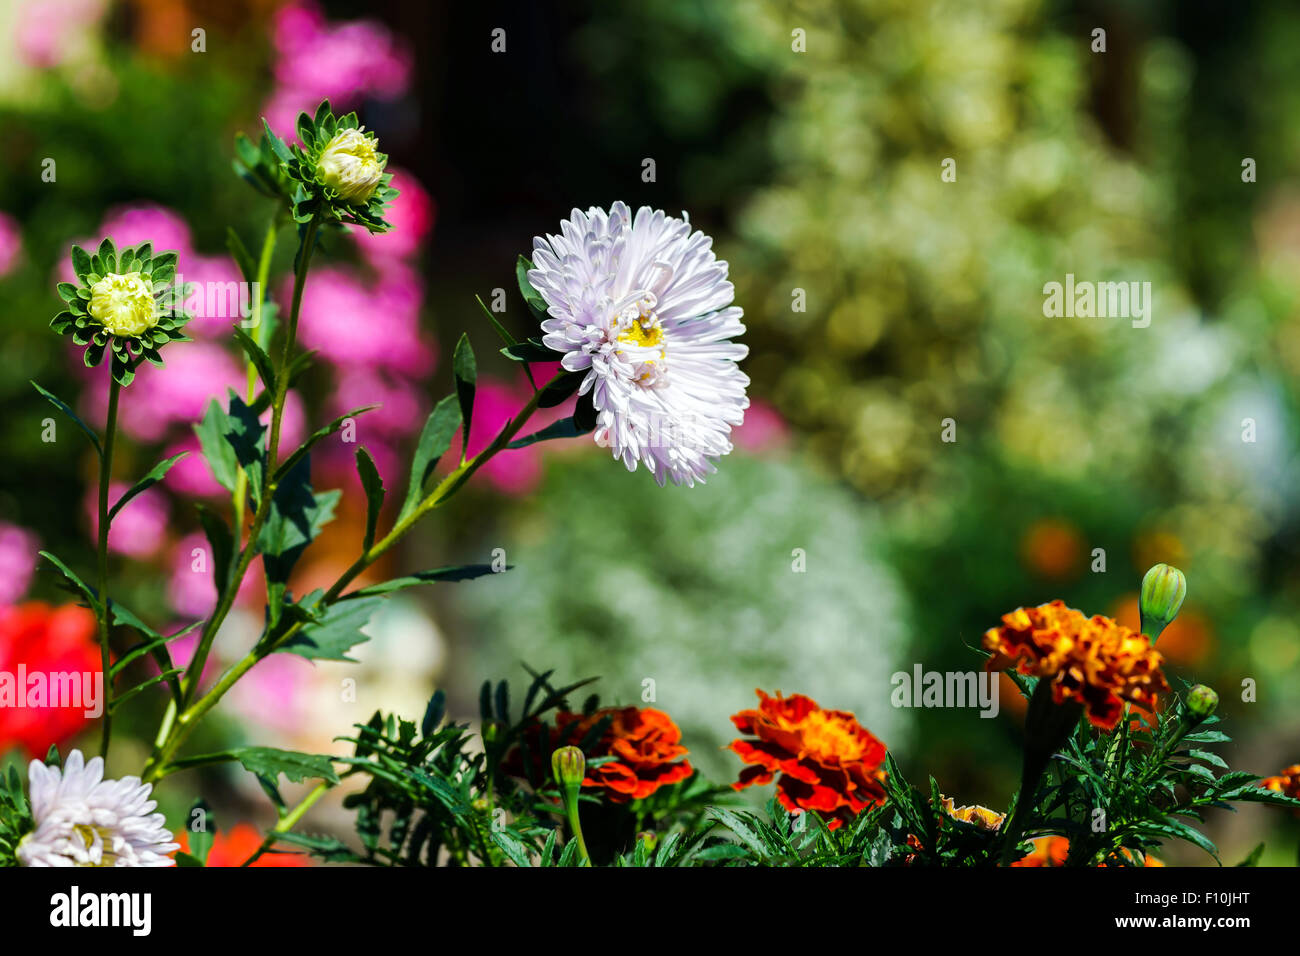 Beautiful natural flowers in private stock photos beautiful beautiful natural flowers in private garden summer time stock image izmirmasajfo